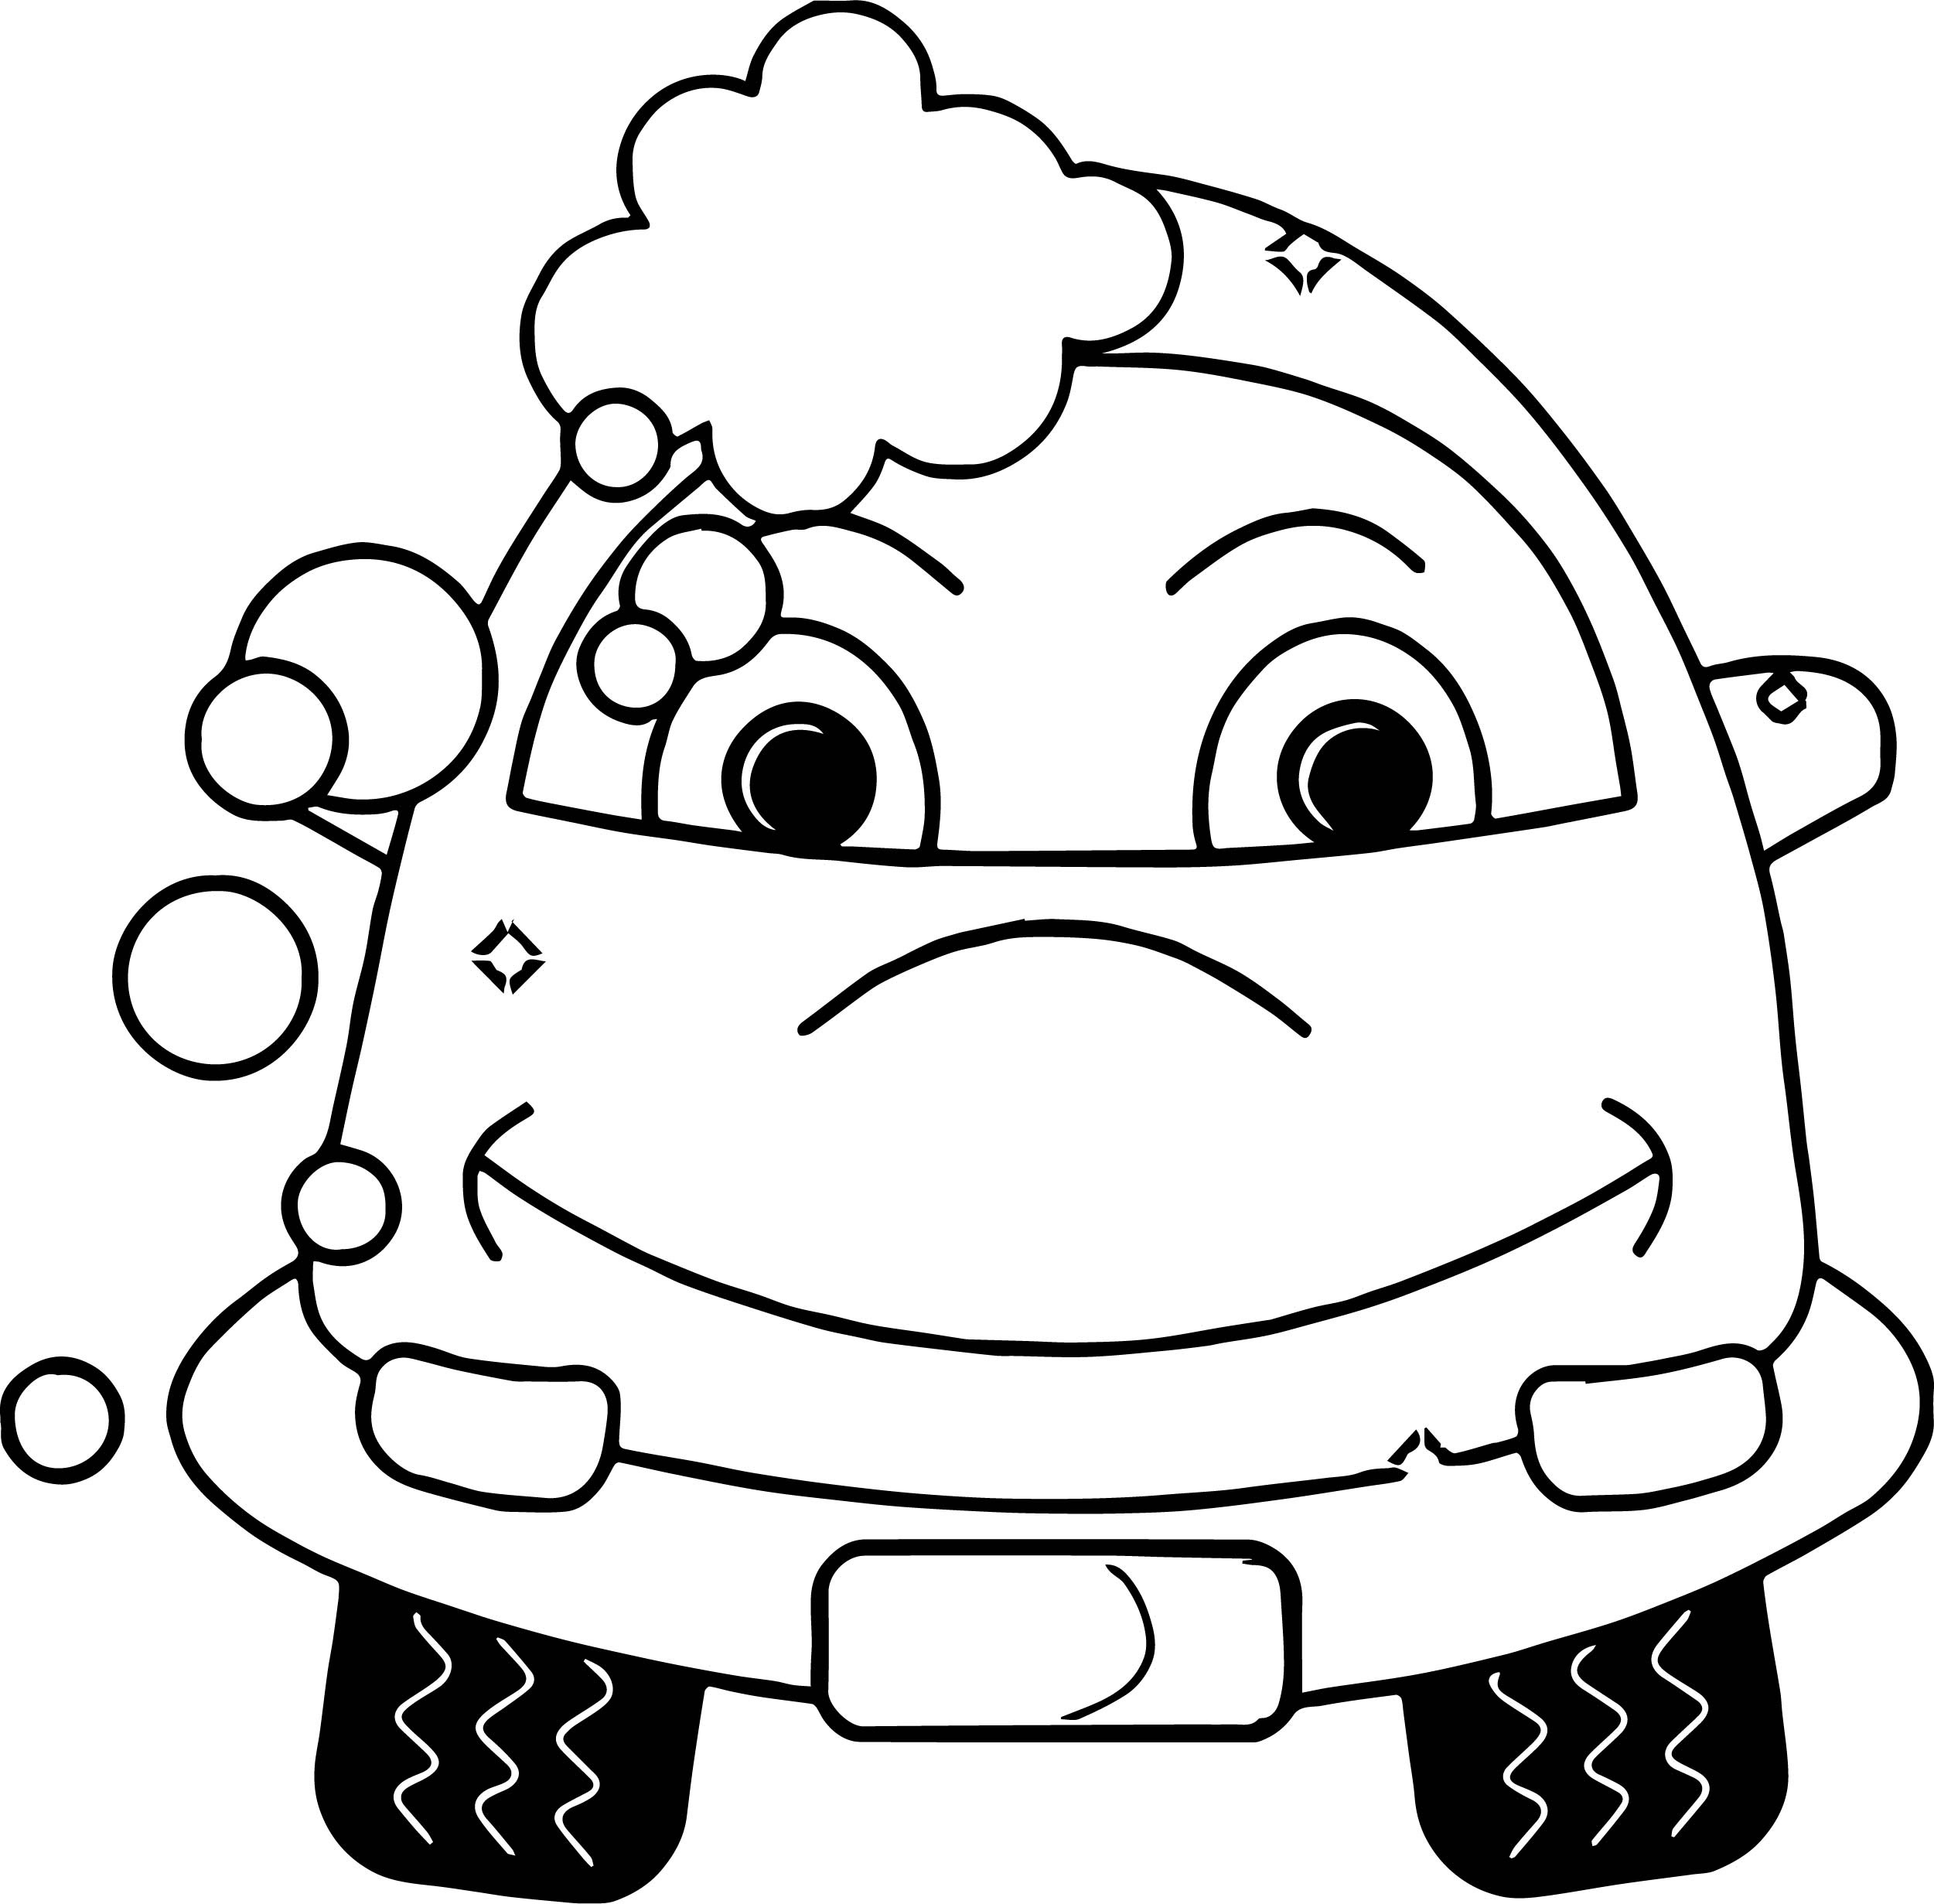 Washing Cartoon Car Coloring Page | Wecoloringpage.com